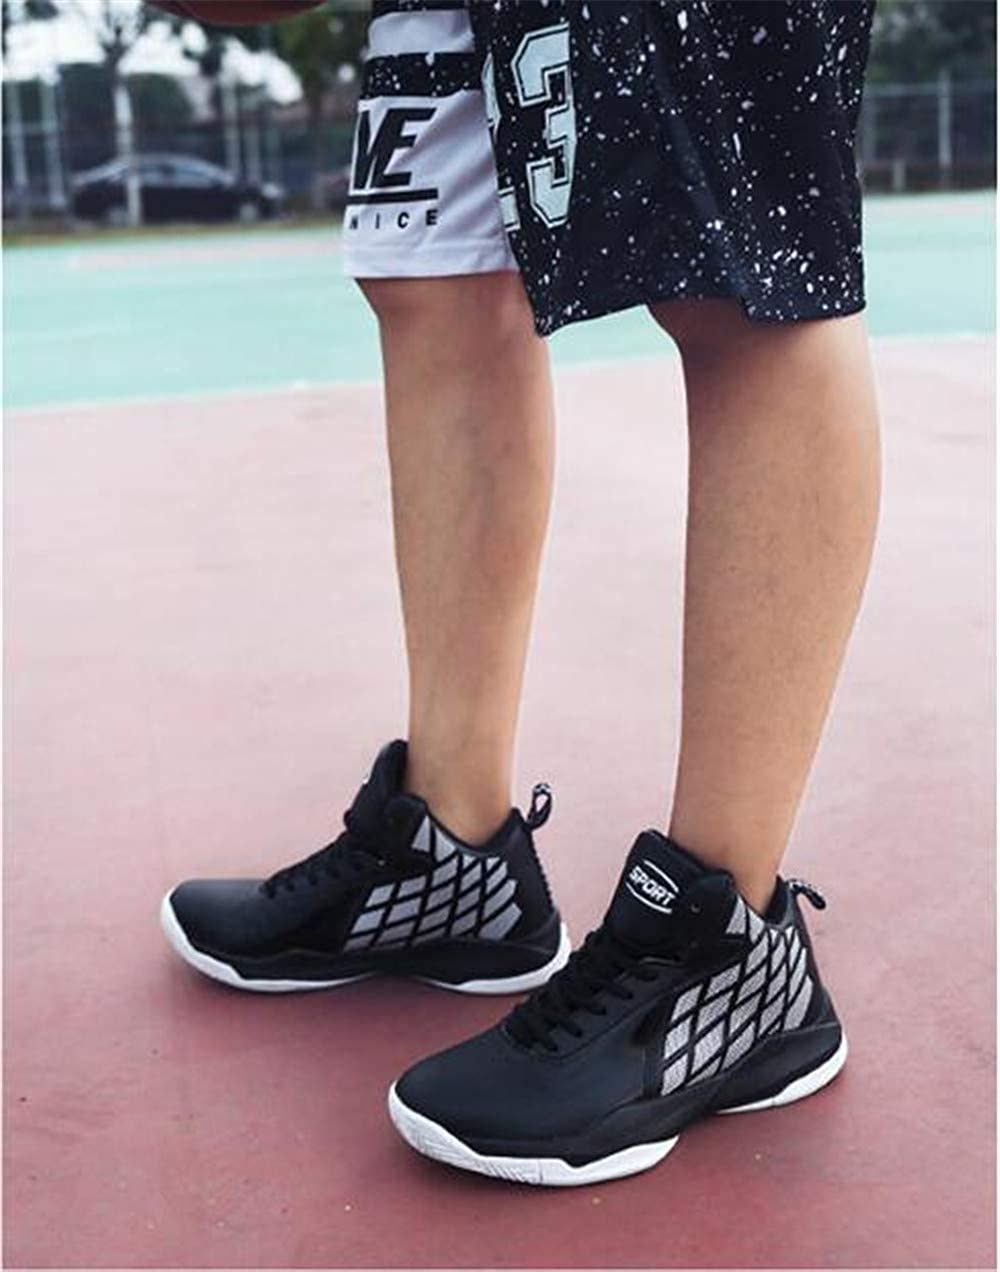 US Men ProDIgal Mens Basketball Shoes Shock Absorption Basketball Boots Trainer Sneakers M Black-Lable 44//10 D